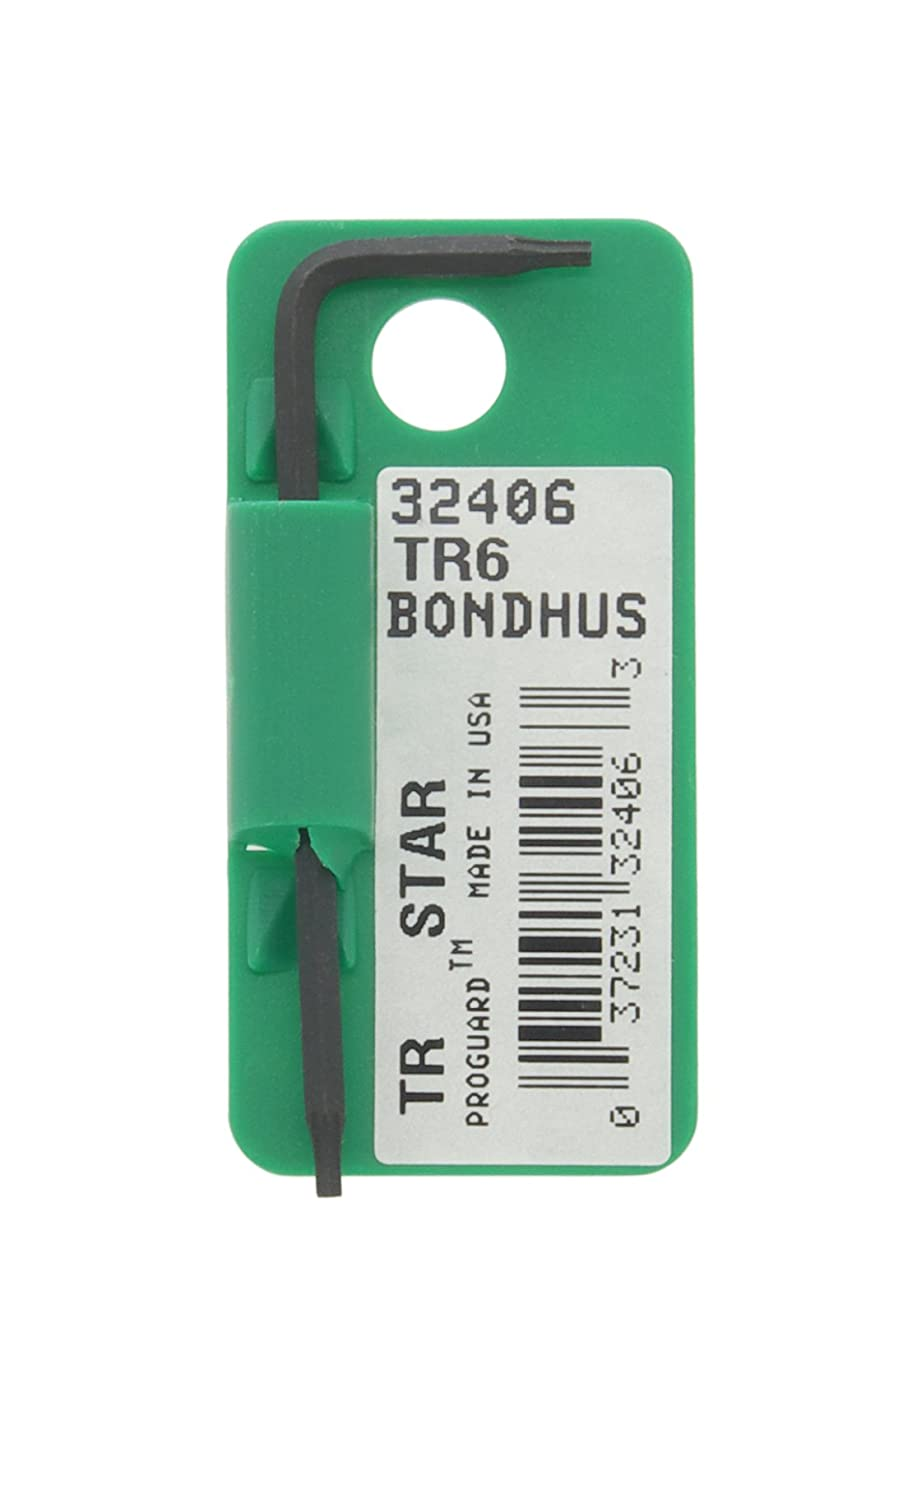 Bondhus 32406 Tagged and Barcoded TR6 Tamper-Resistant Tip Star Key L-Wrench with ProGuard Finish, 2.1' 2.1